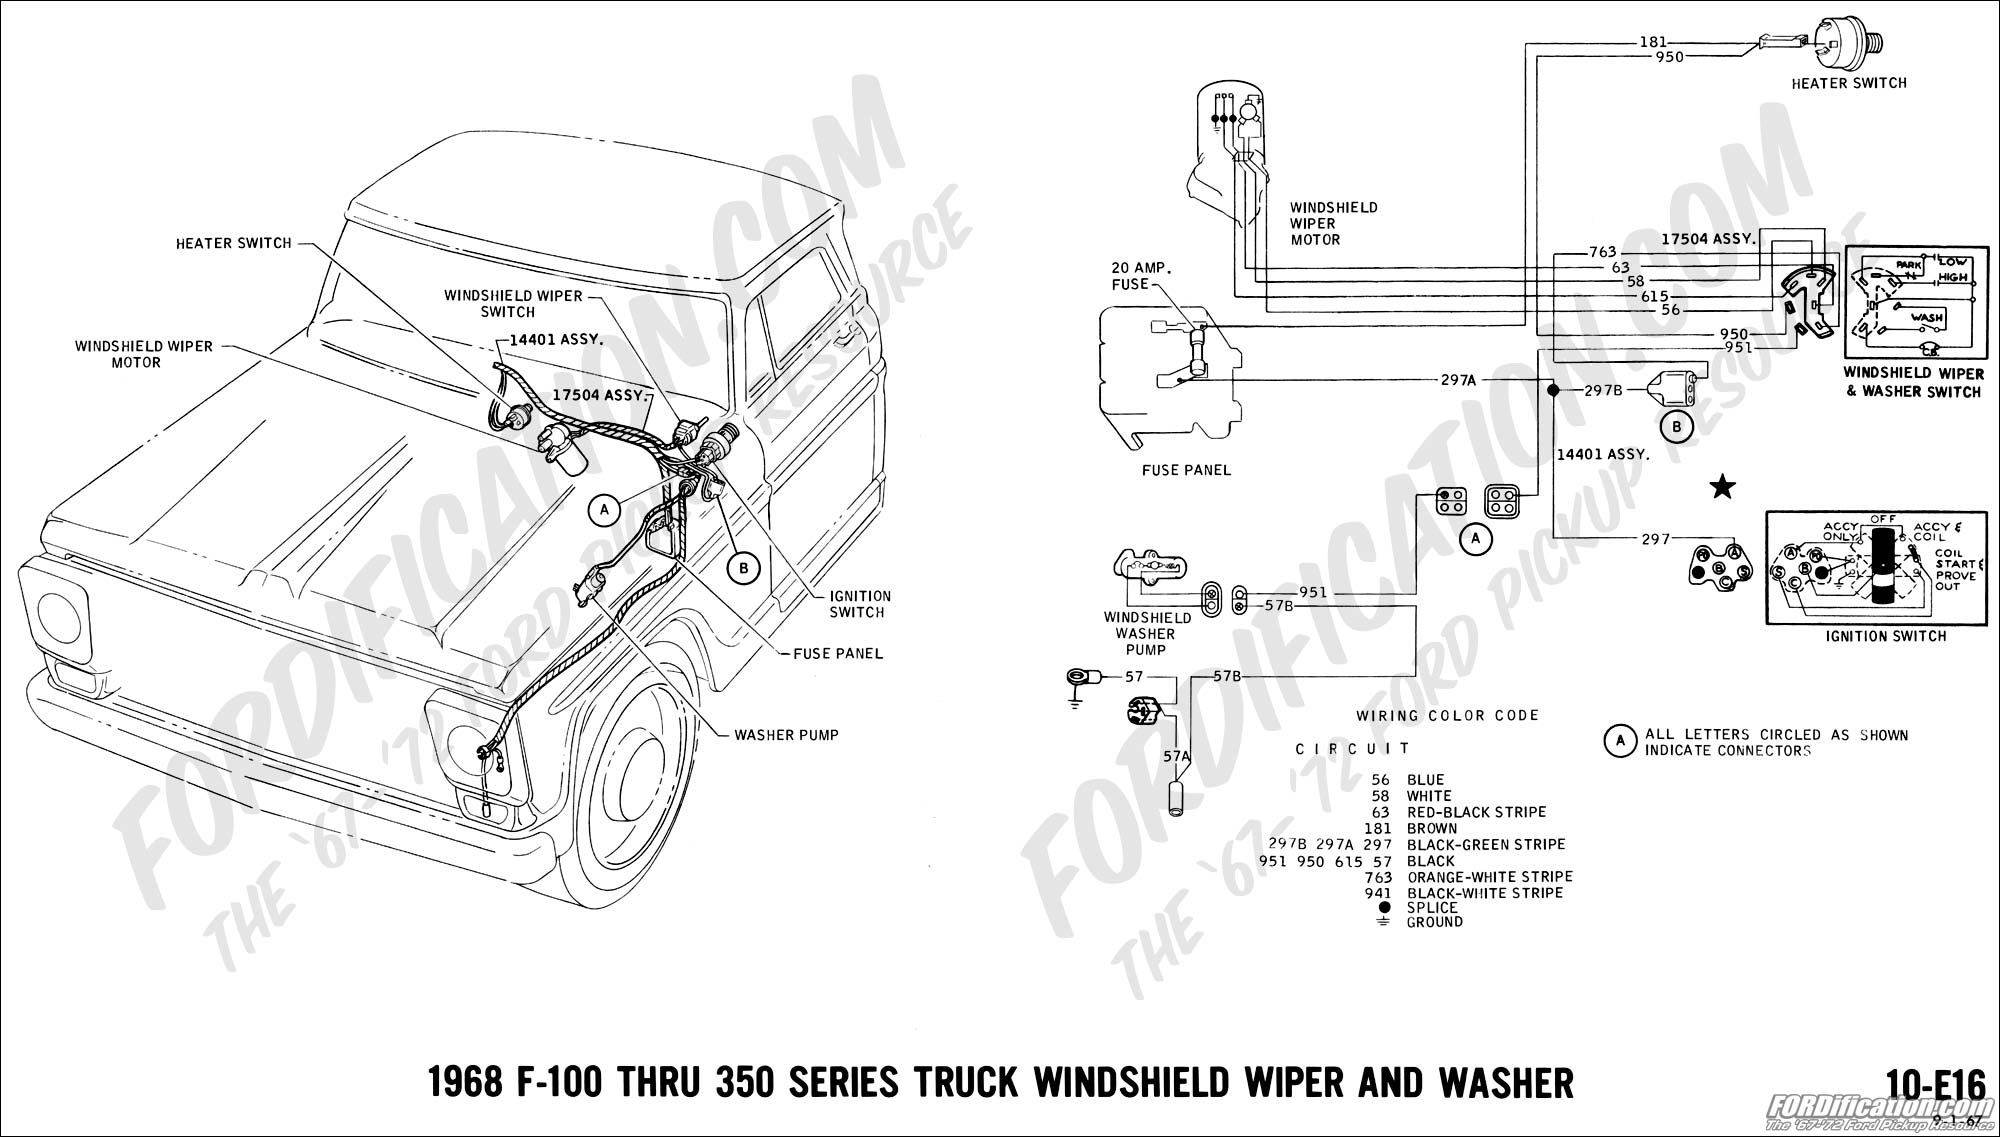 68 18 ford truck technical drawings and schematics section h wiring Ford F-250 Wiring Diagram at mifinder.co